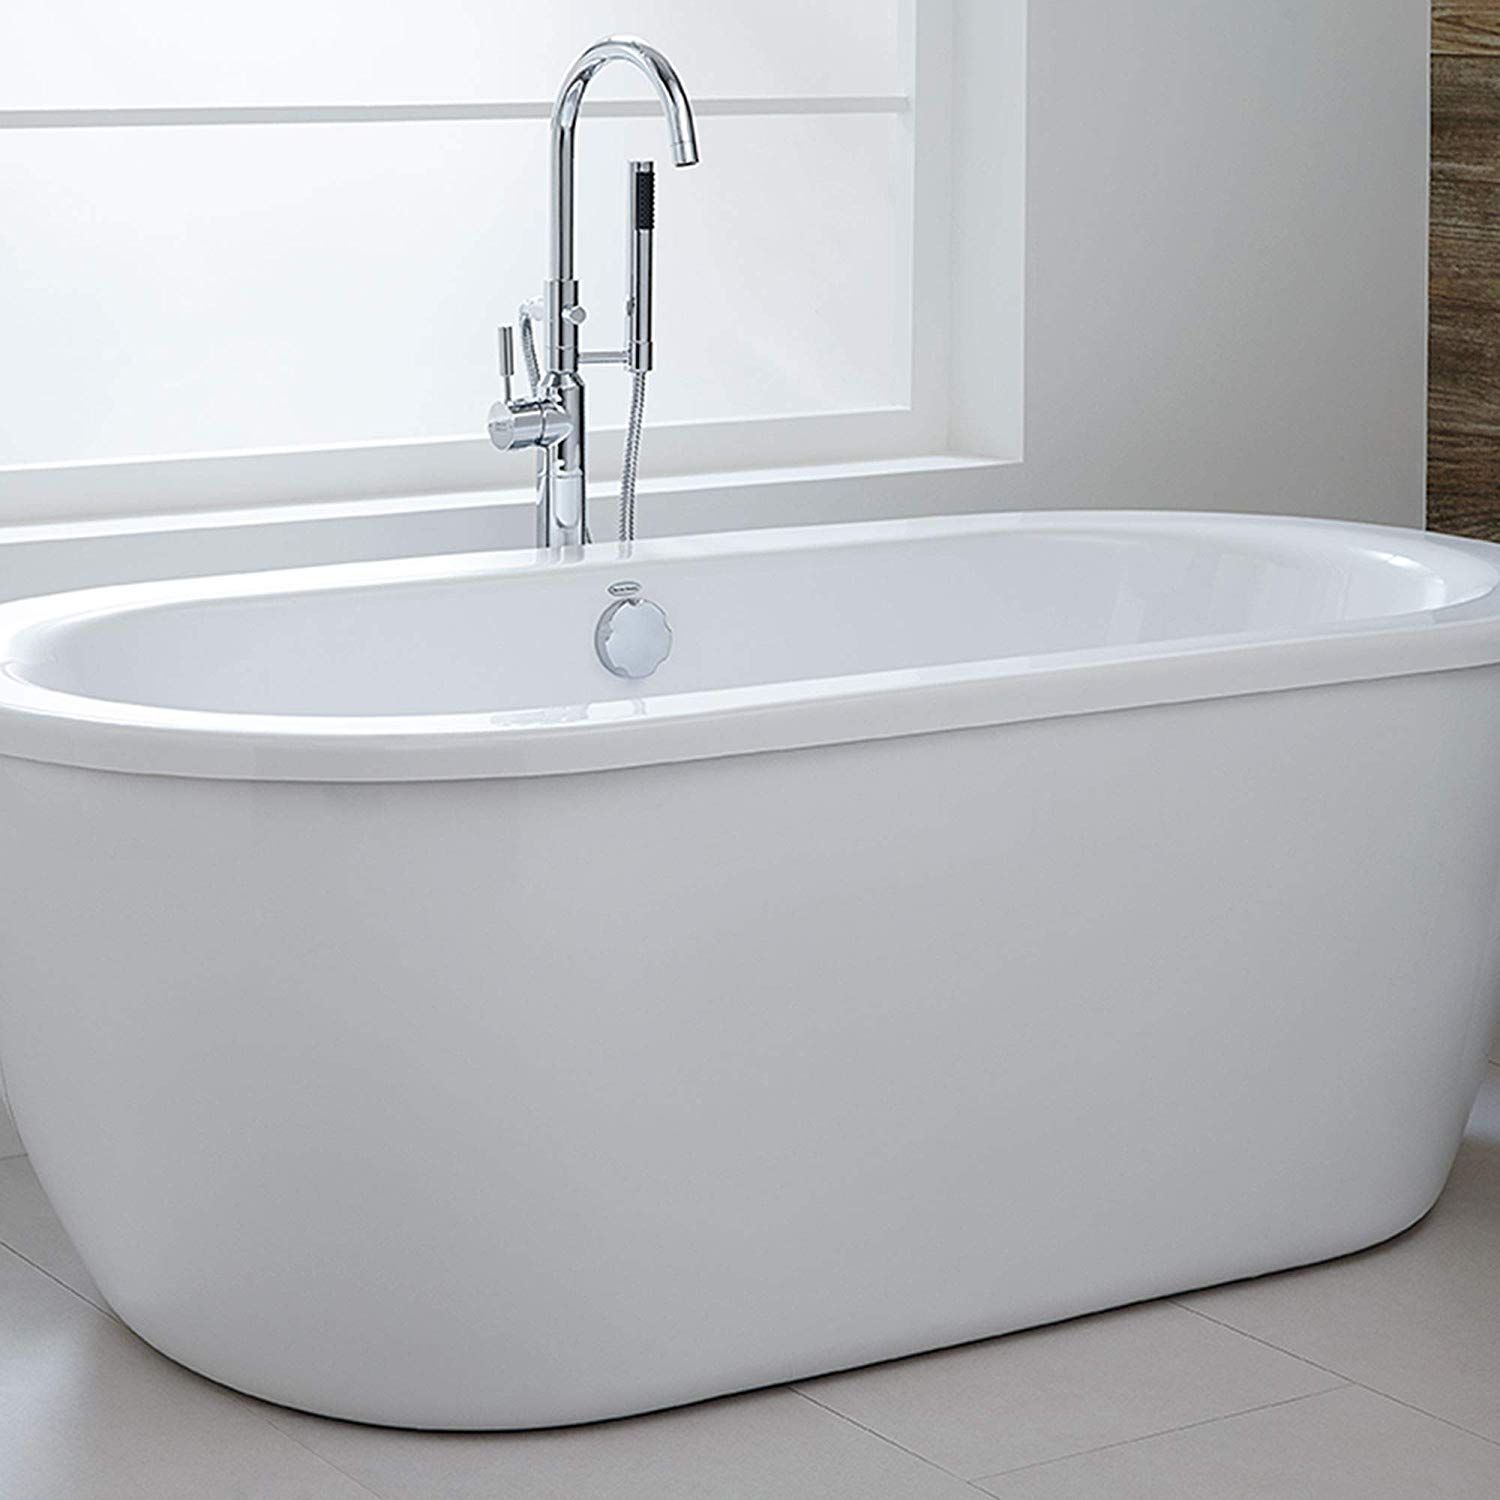 Best Freestanding Bathtub Reviews In 2020 With Images Free